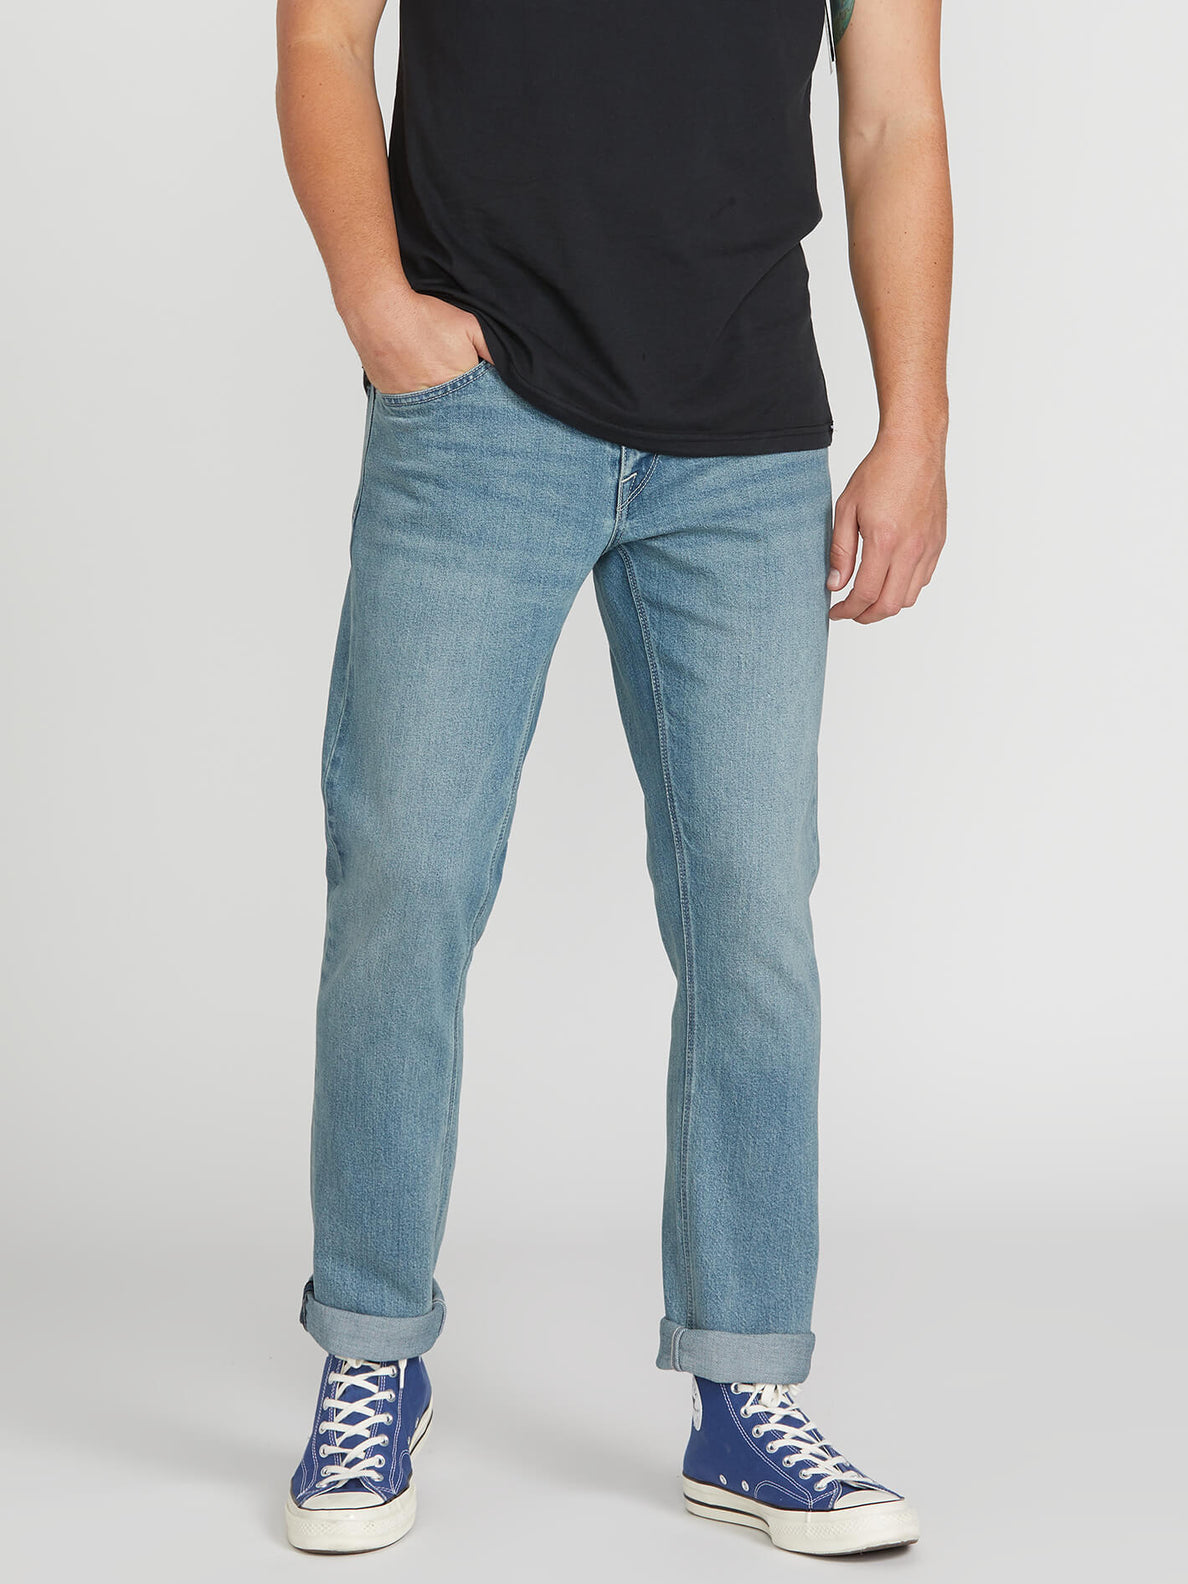 Vorta Slim Fit Jeans - Wide Goods Light (A1931501_WGL) [4]